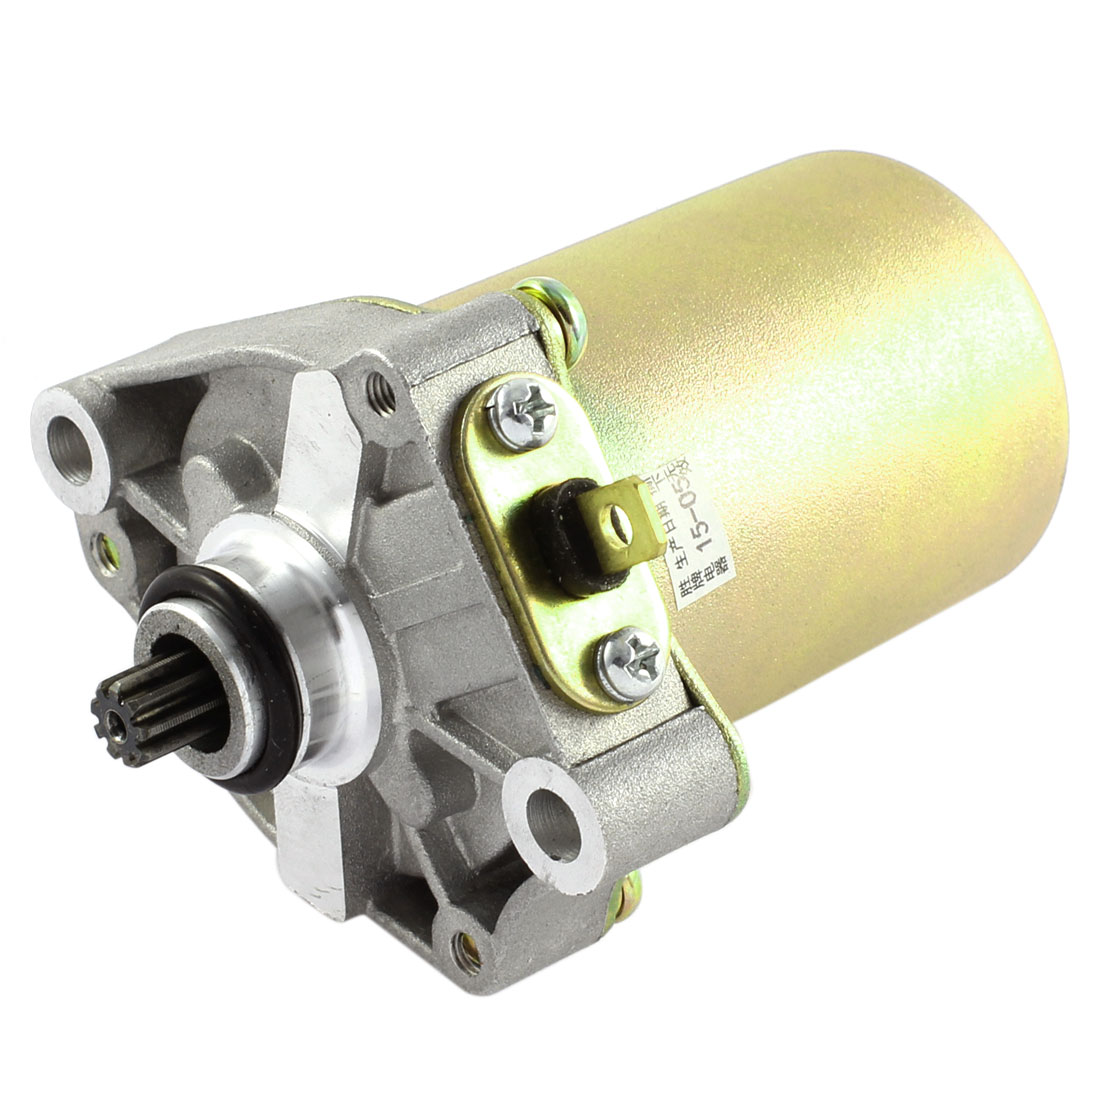 120mm Length Metal Motorcycle Motorbike Electrical System Start Starter Motor for Princess 100